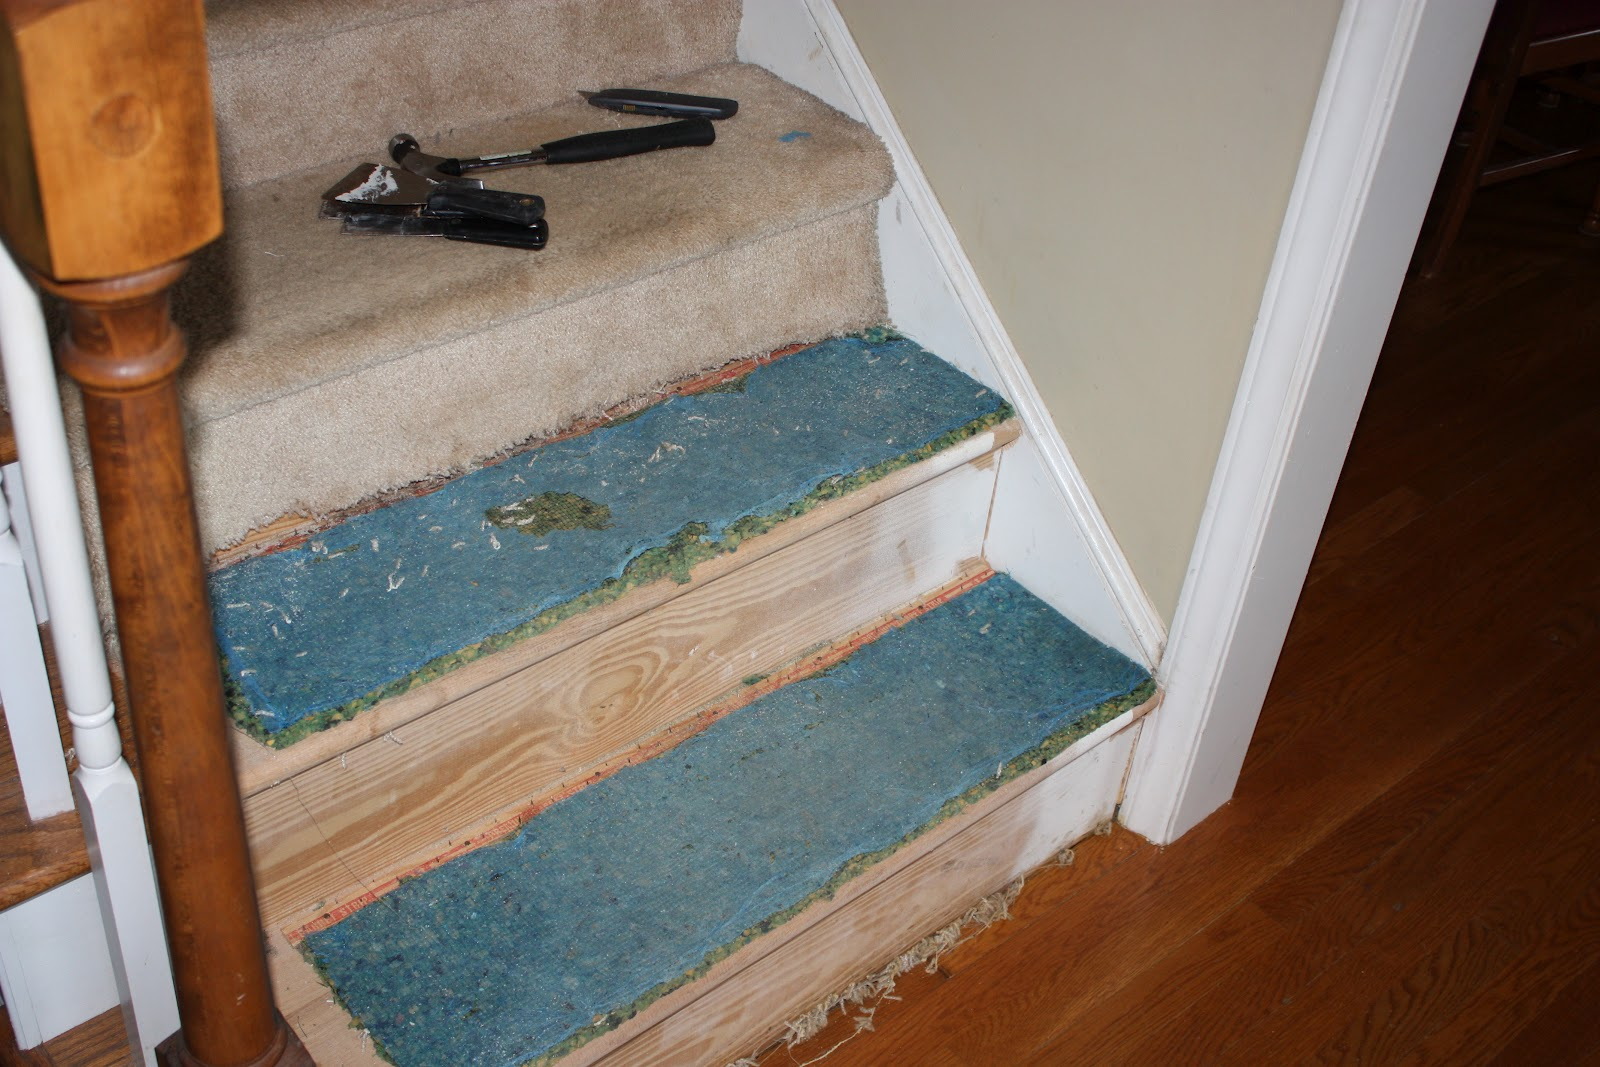 ... Up And Down The Stairs, With All The Stains And Spills. Finally After  The New Year And With All Decoration Put Up. I Started Taking The Carpet Off .